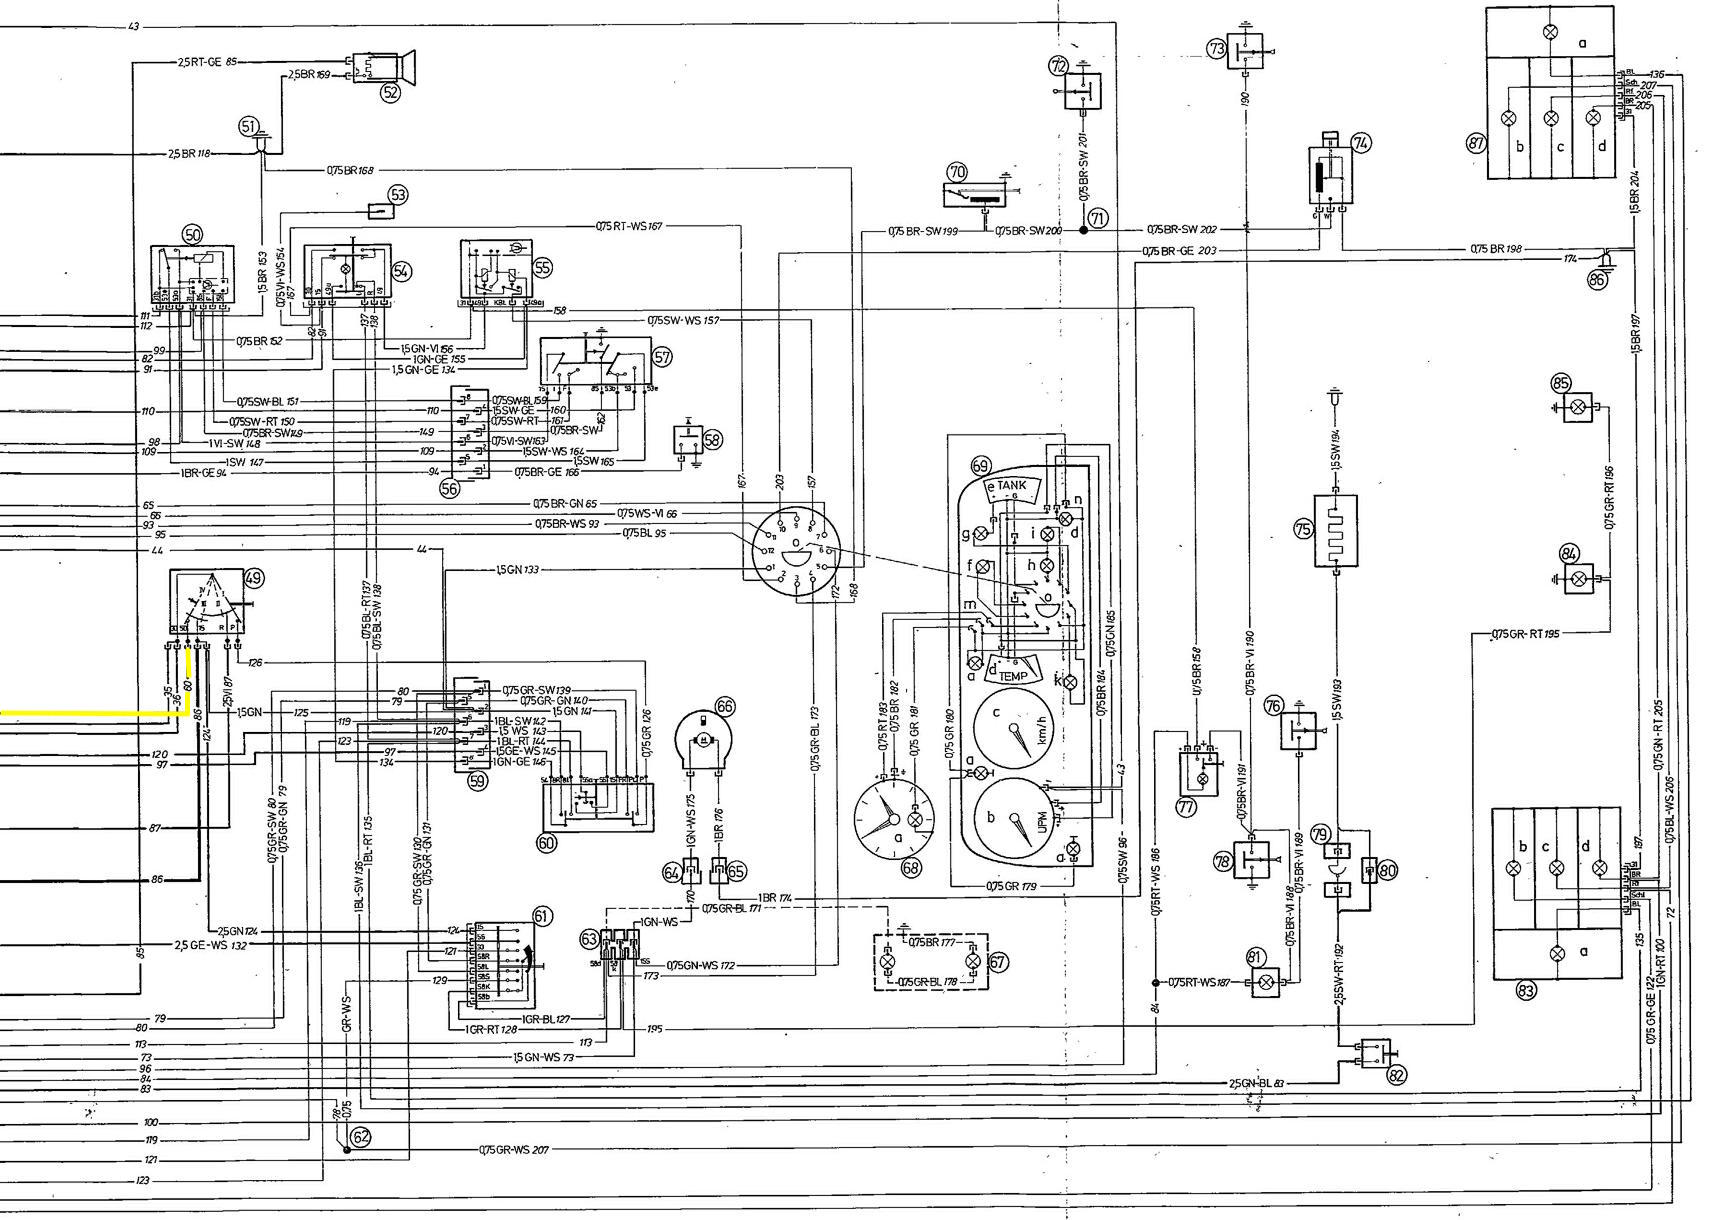 hight resolution of 1974 bmw 2002 wiring diagram wiring diagram home mini wiring diagrams 71 bmw 2002 ignition wiring